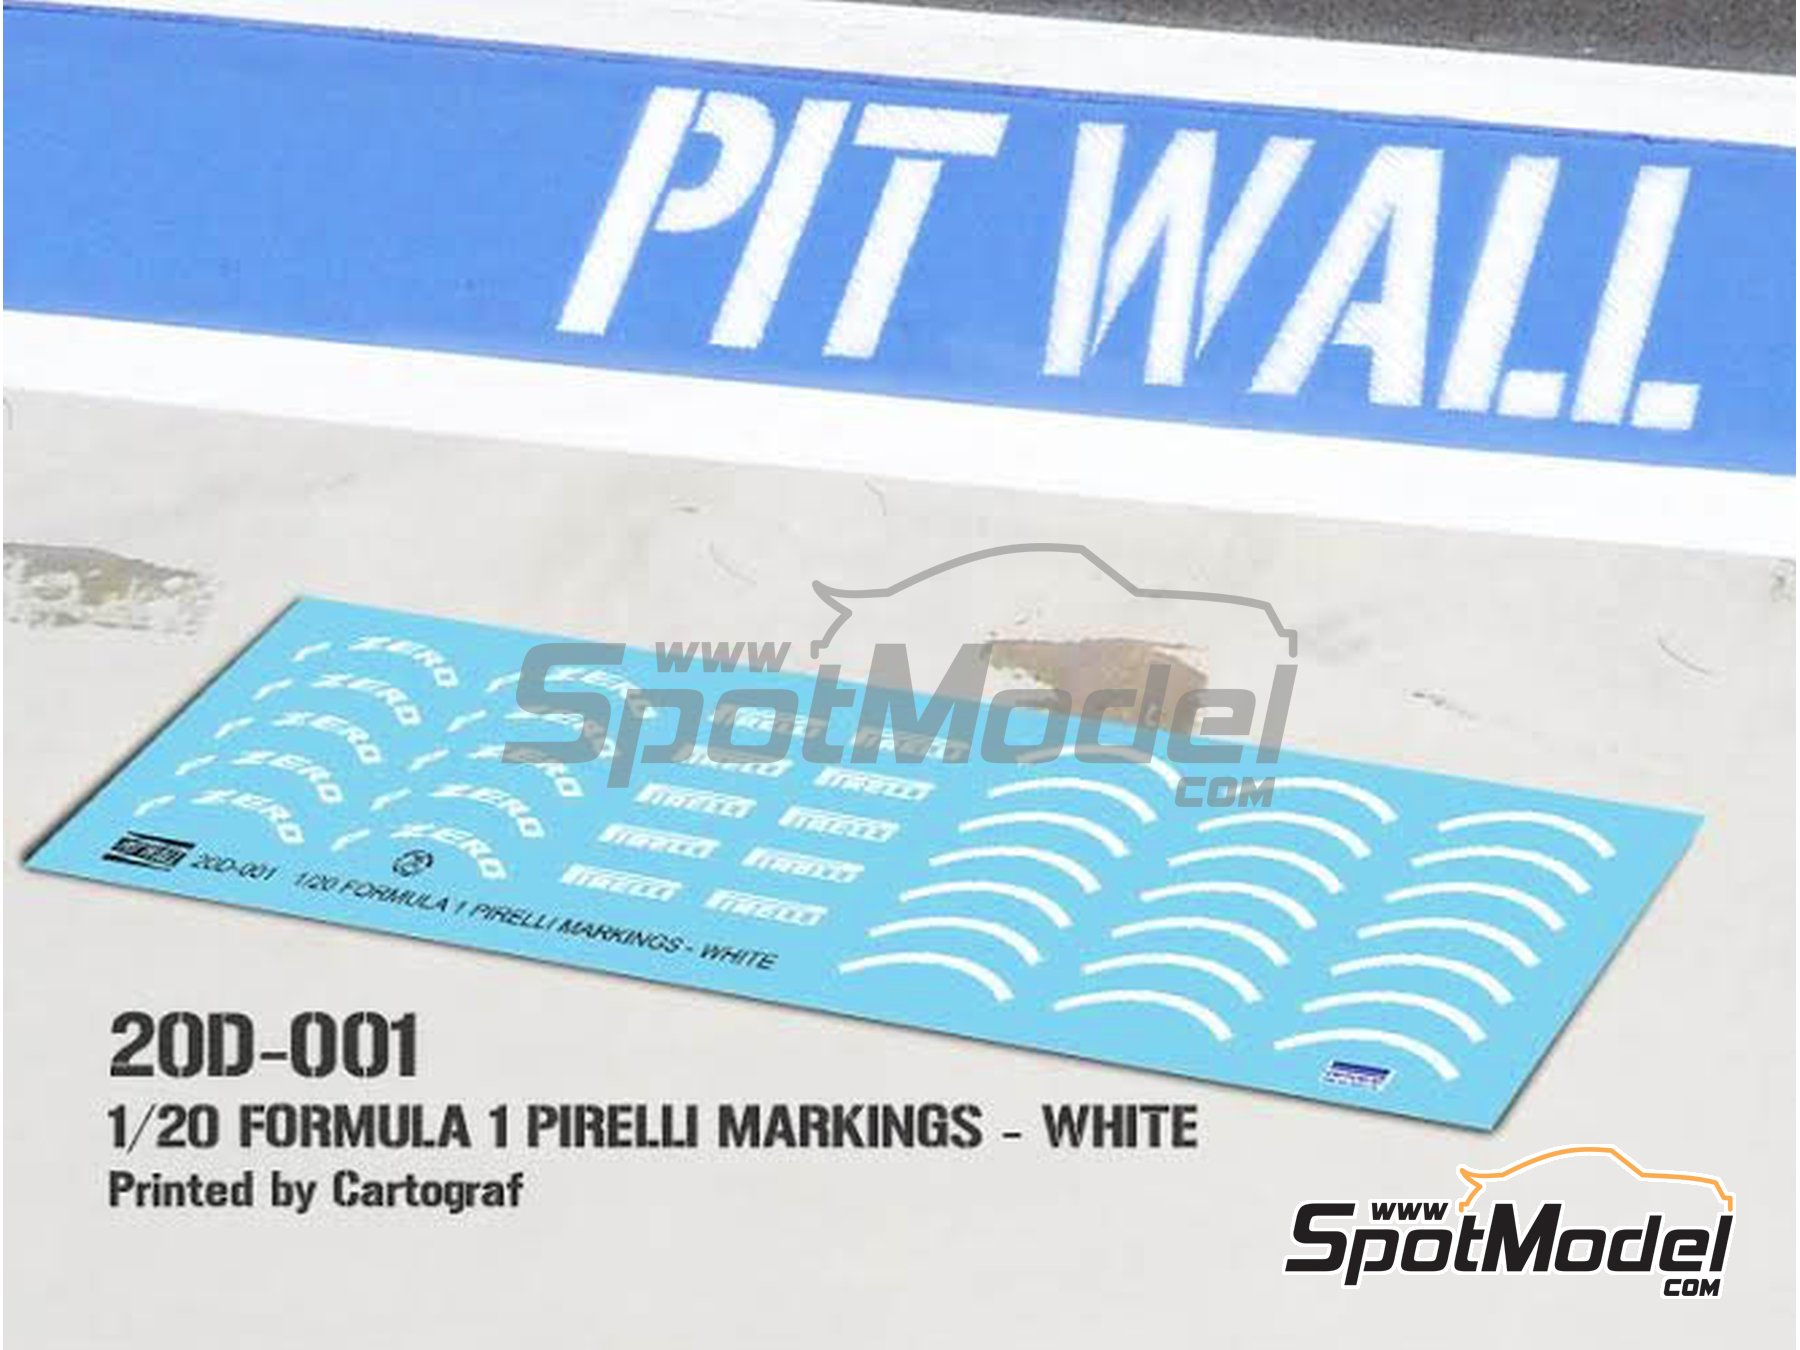 Image 1: White Pirelli P Zero Formula 1 | Logotypes in 1/20 scale manufactured by Pit Wall (ref. 20D-001)